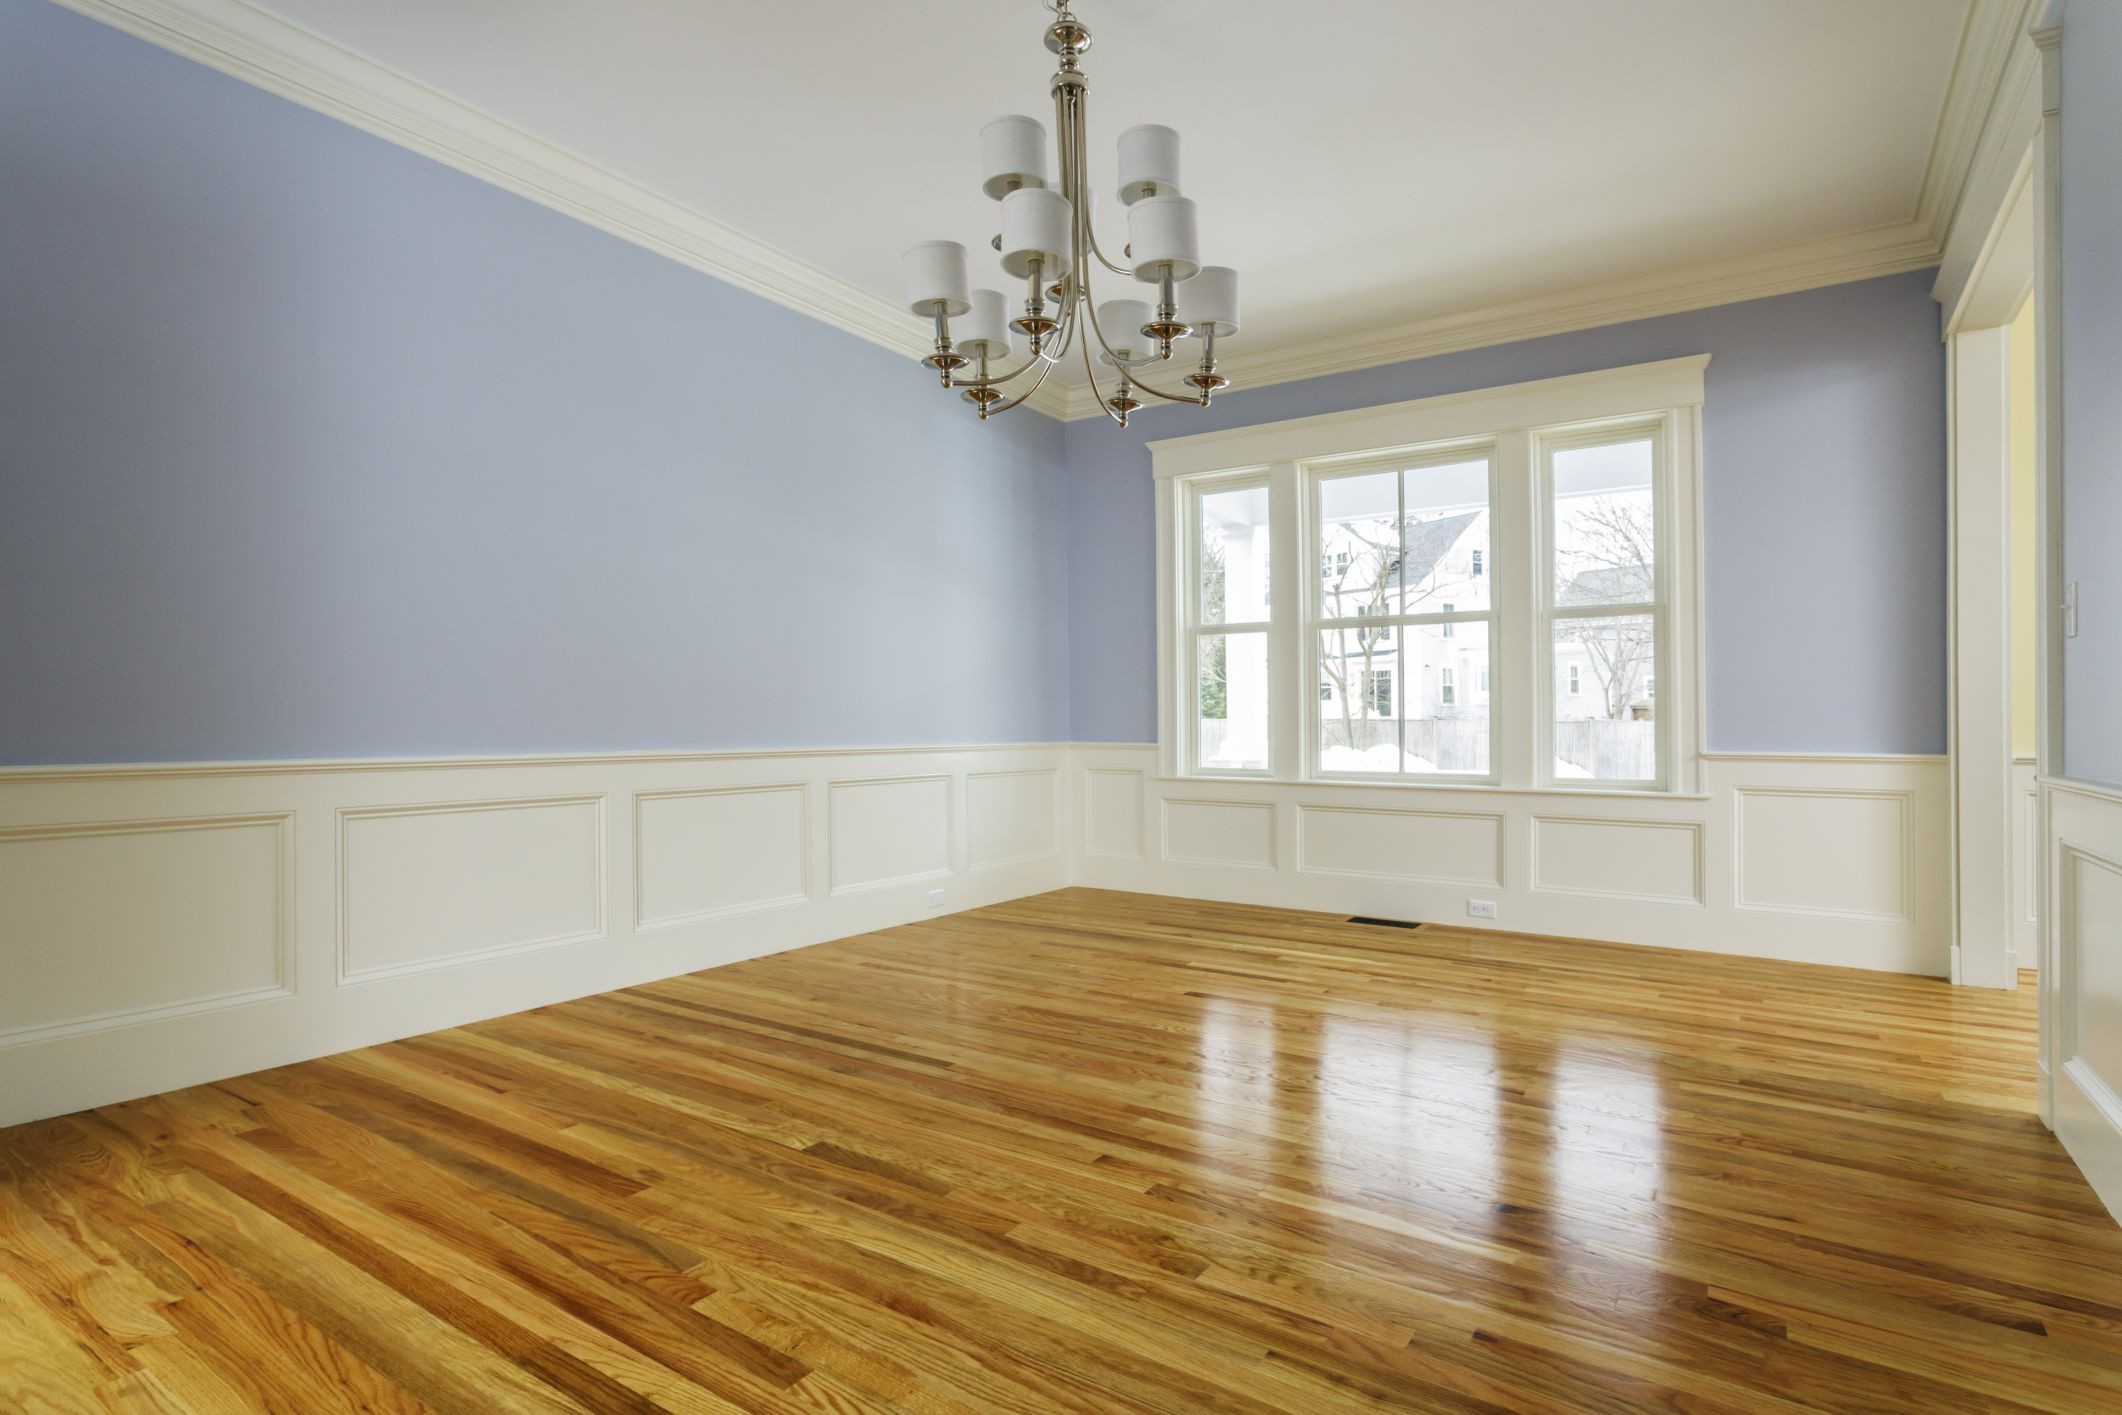 buy hardwood flooring canada of the cost to refinish hardwood floors inside 168686572 highres 56a2fd773df78cf7727b6cb3